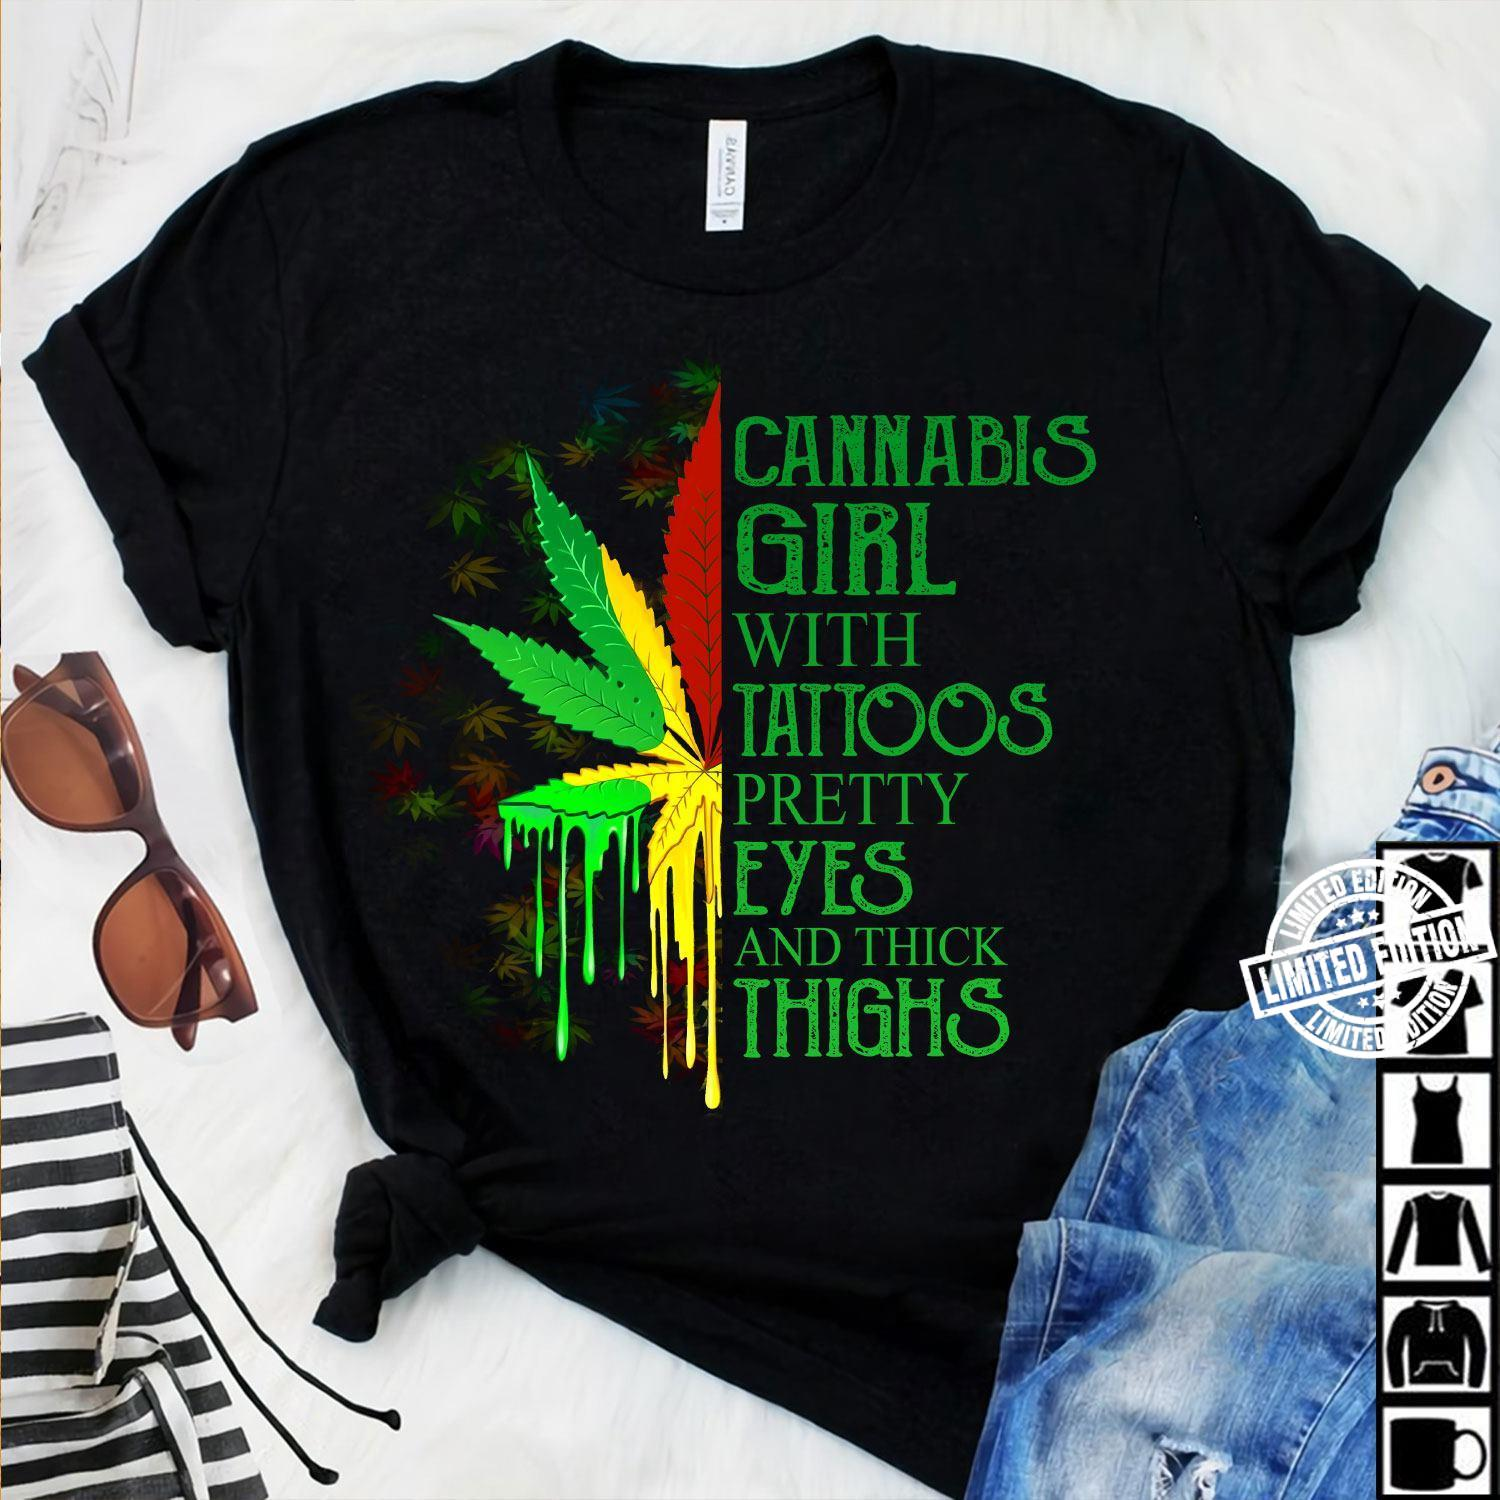 Cannabis girl with tattoos pretty eyes and thick thighs shirt